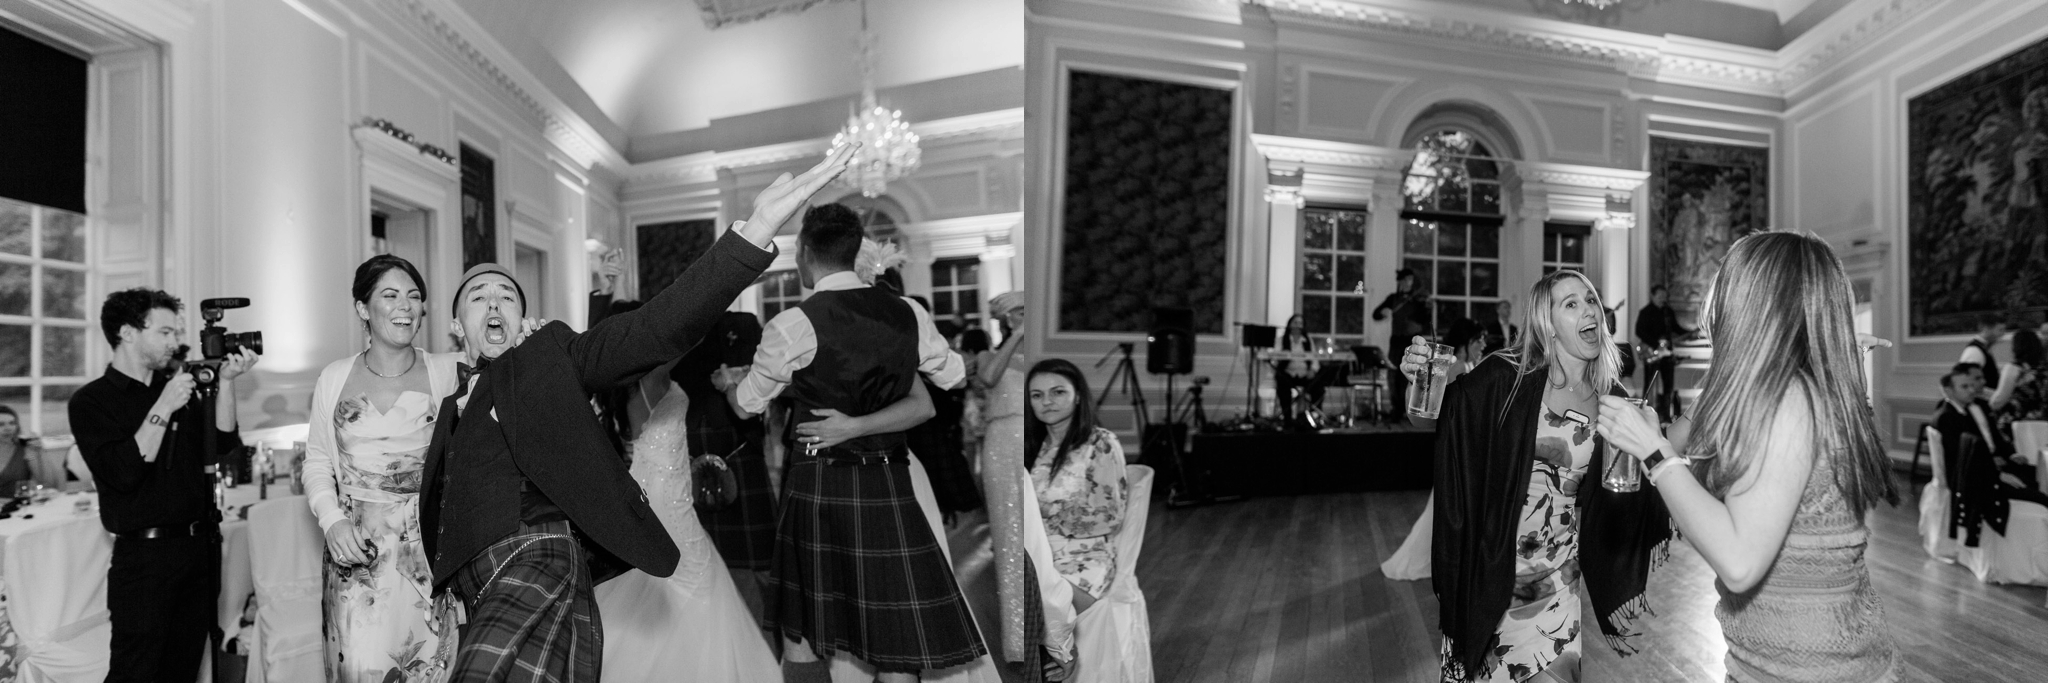 Suzanne_li_photography_hopetoun_house_0105.jpg